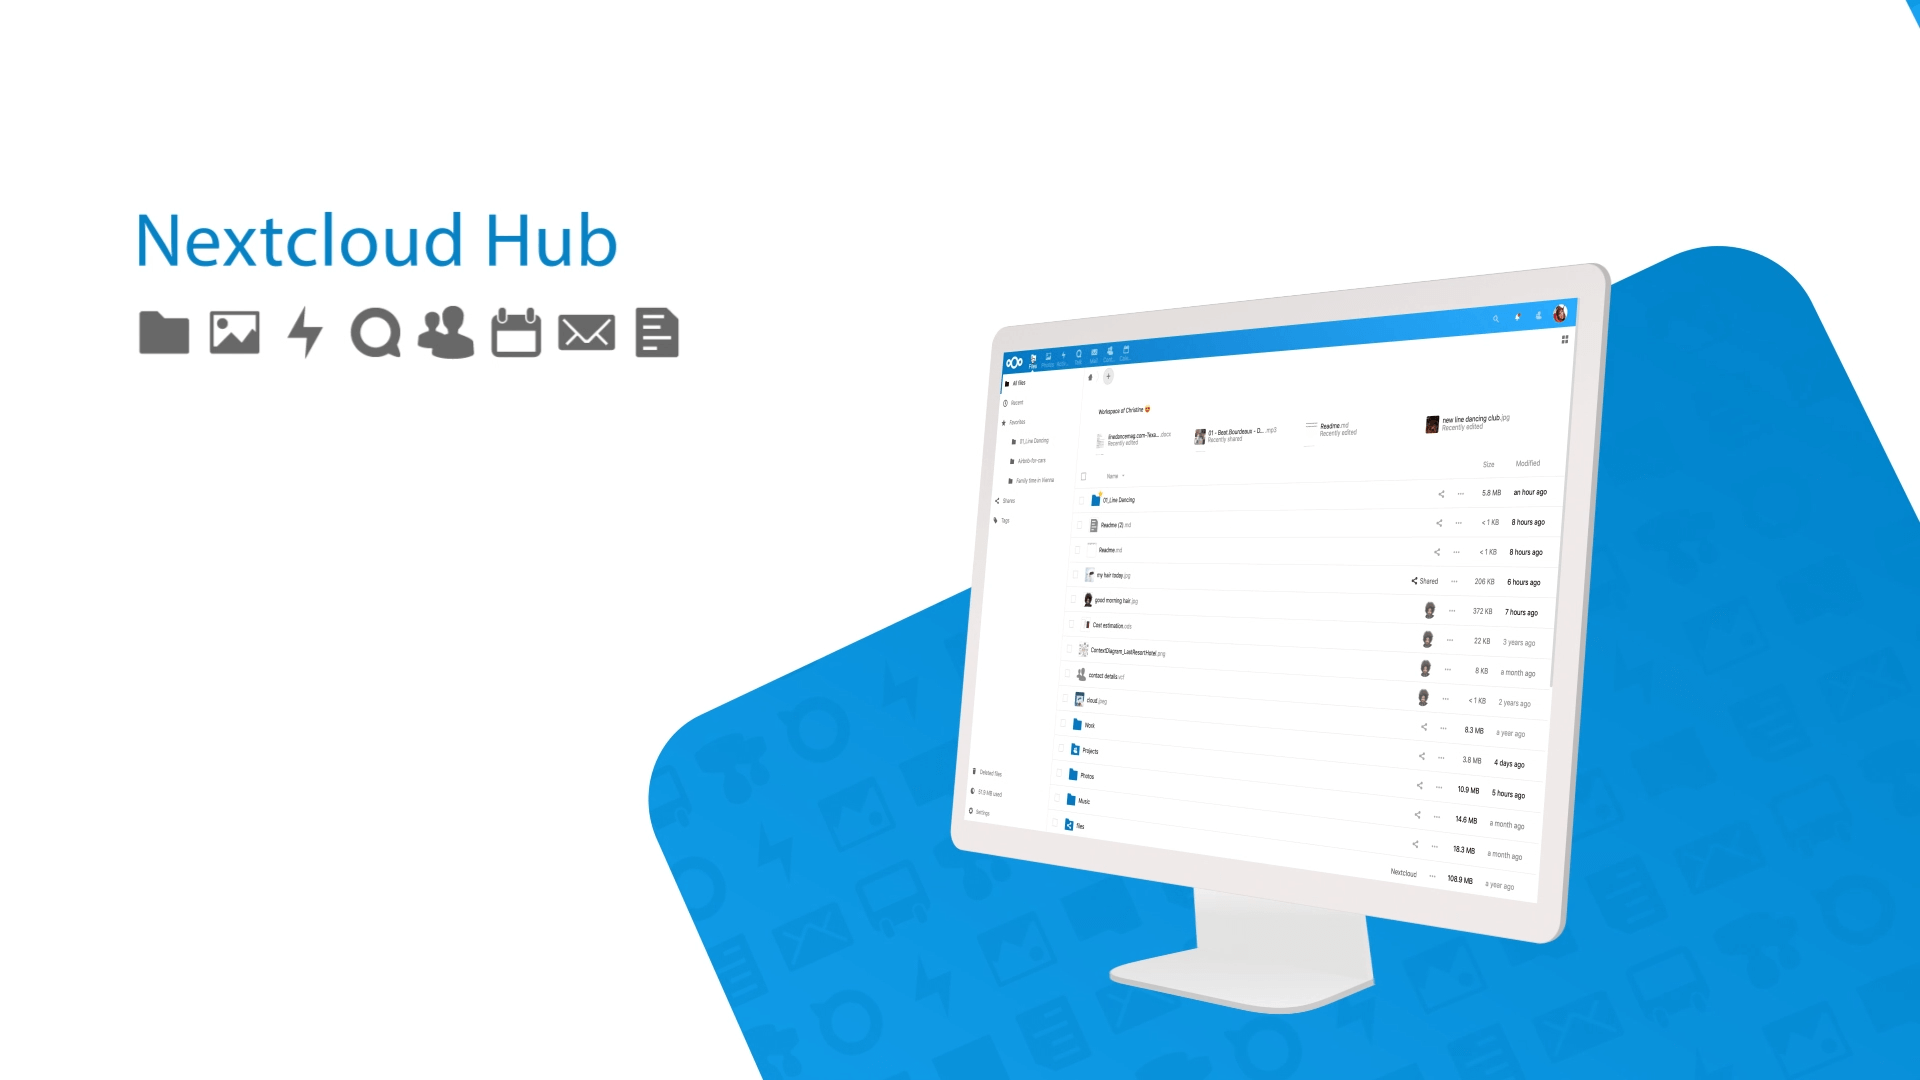 Cloud services for file sharing; Next Cloud